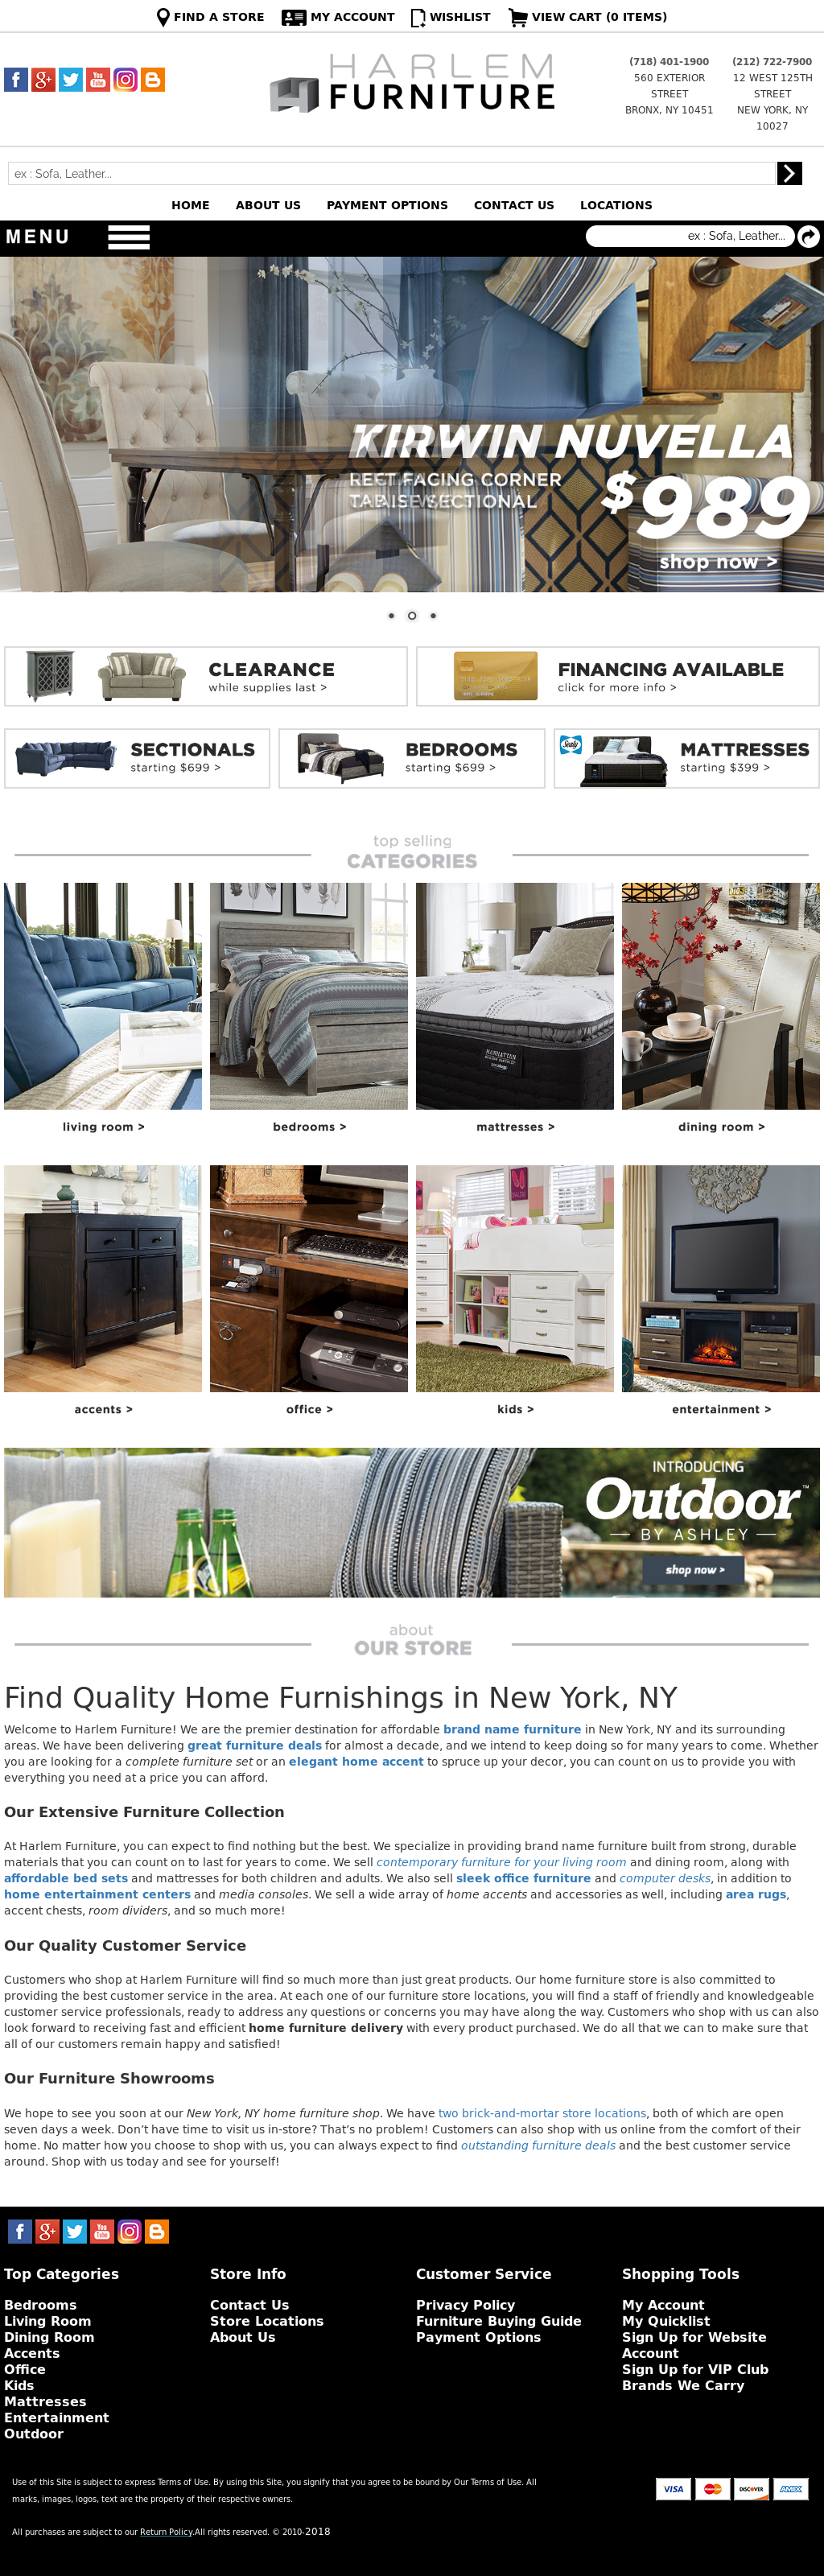 Harlem Furniture Competitors, Revenue and Employees - Owler